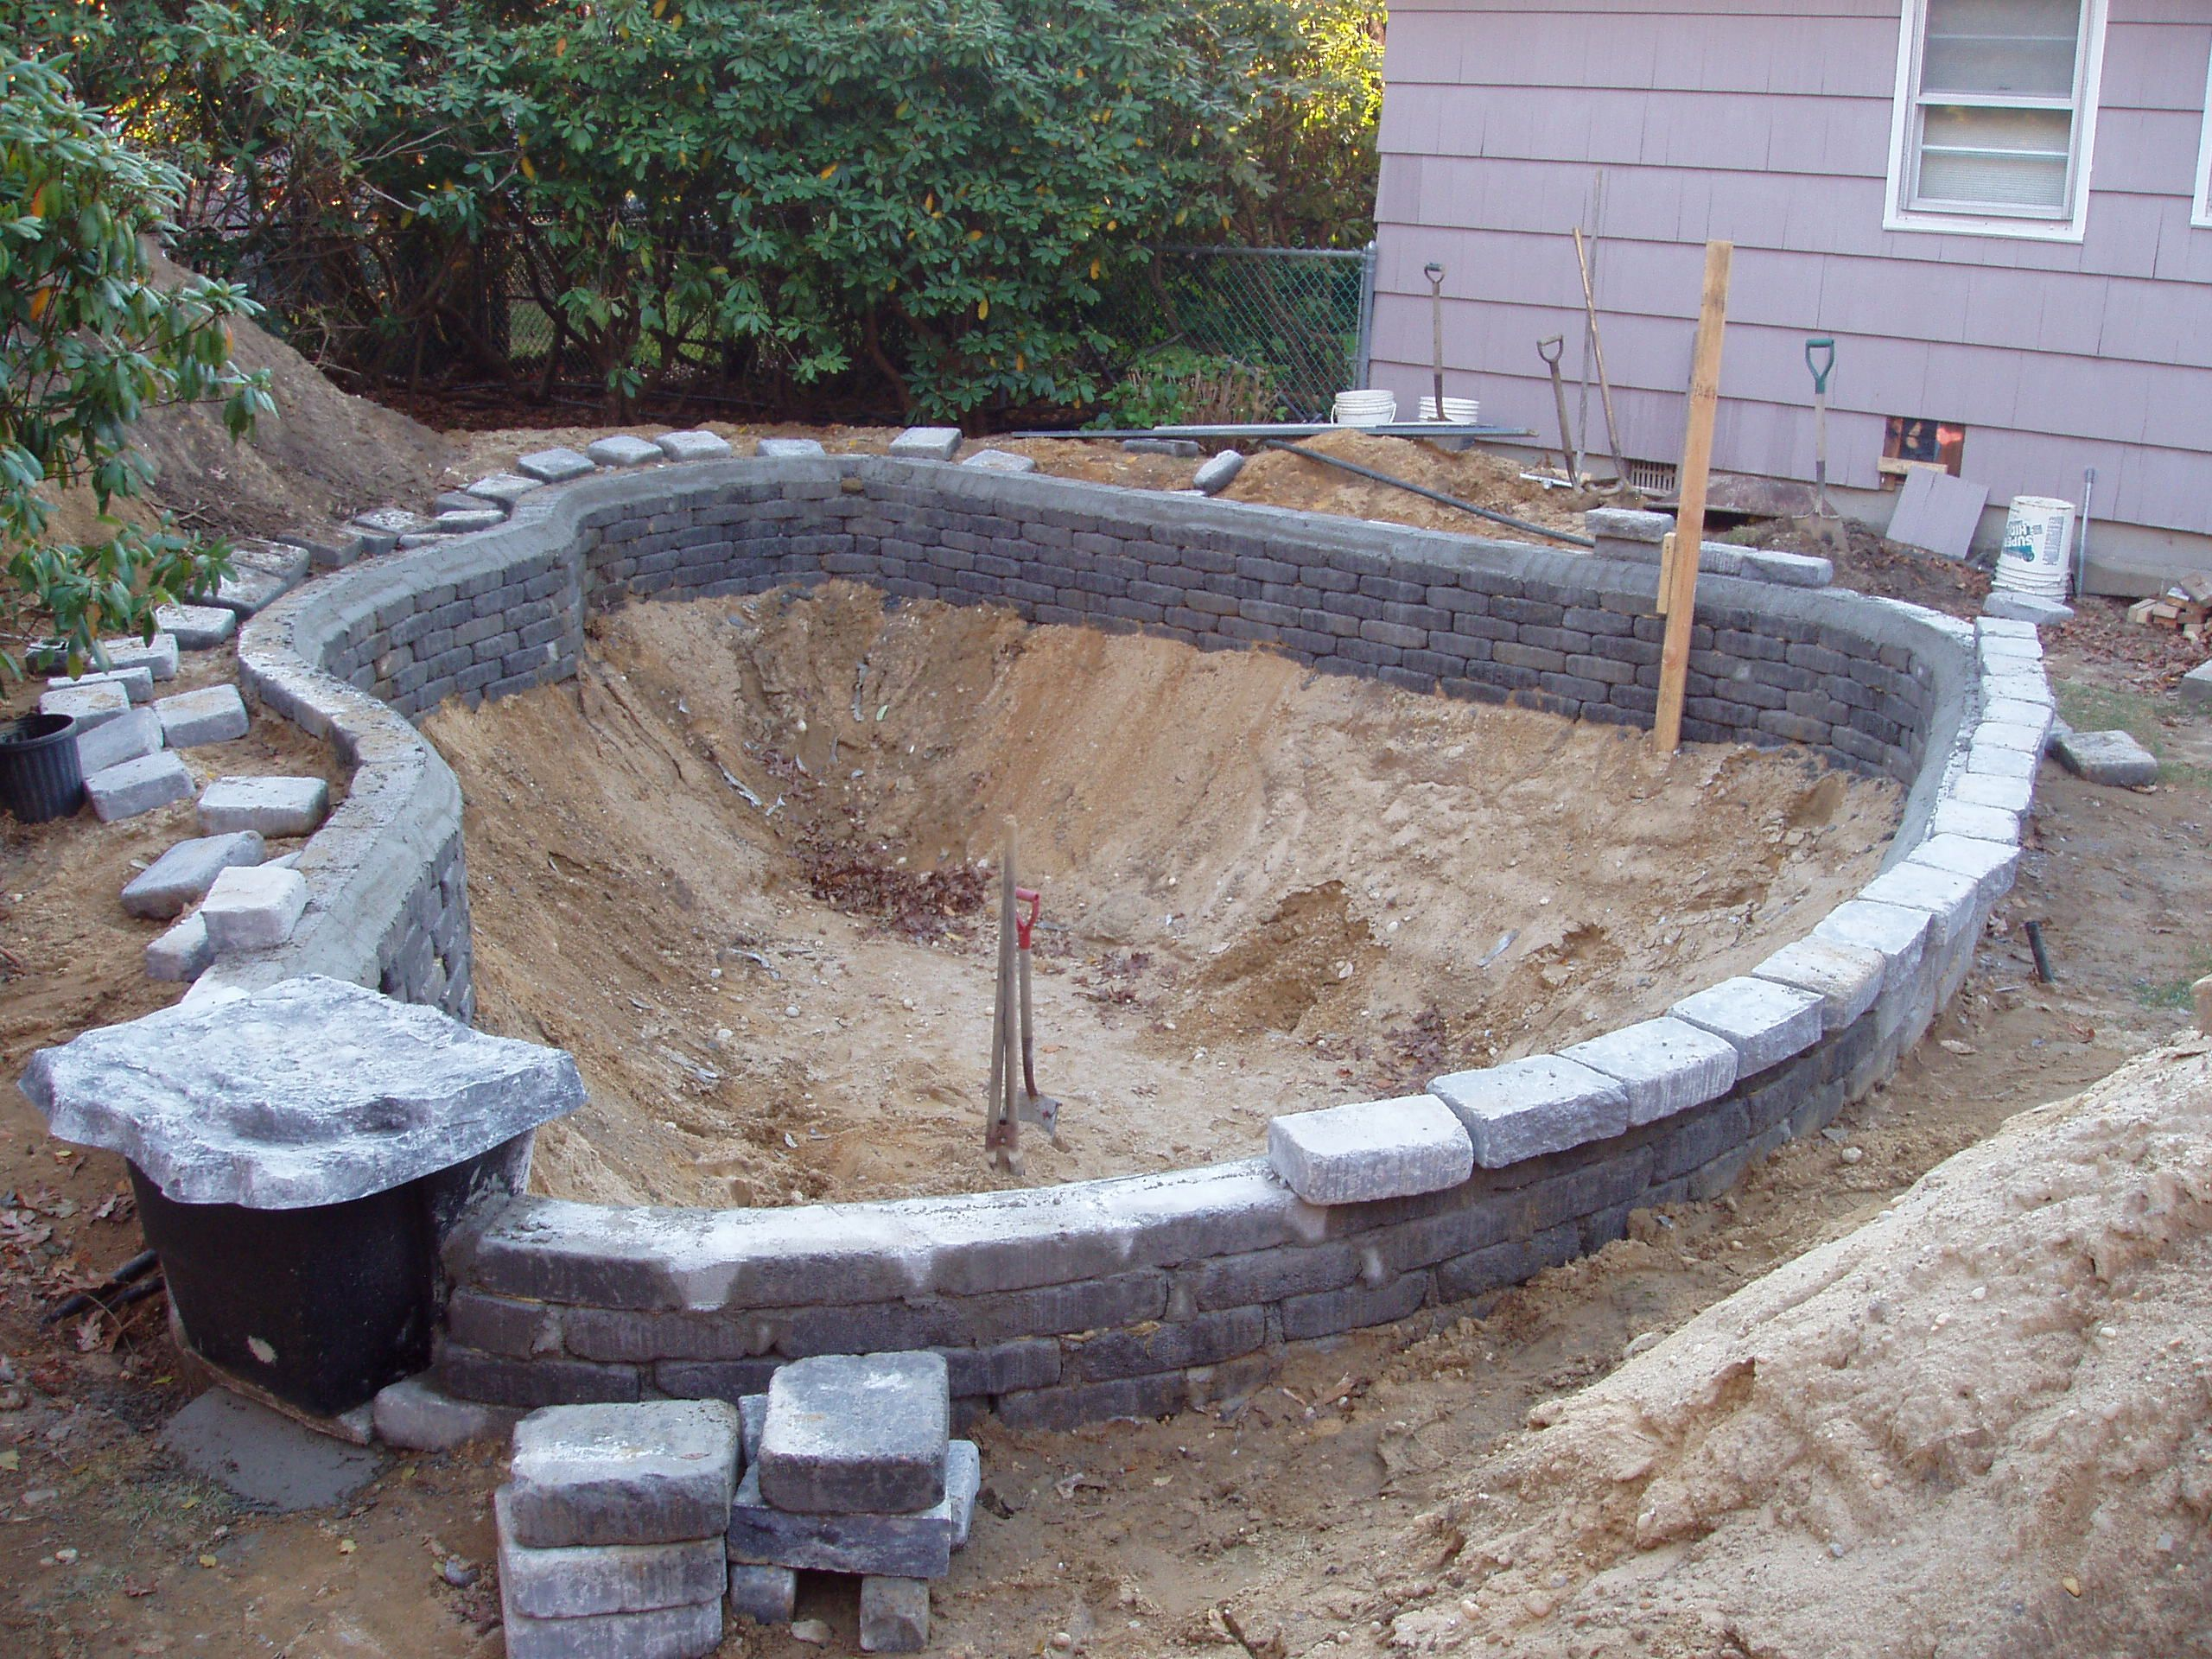 Pond design and construction google search aquaponics for Concrete koi pond construction